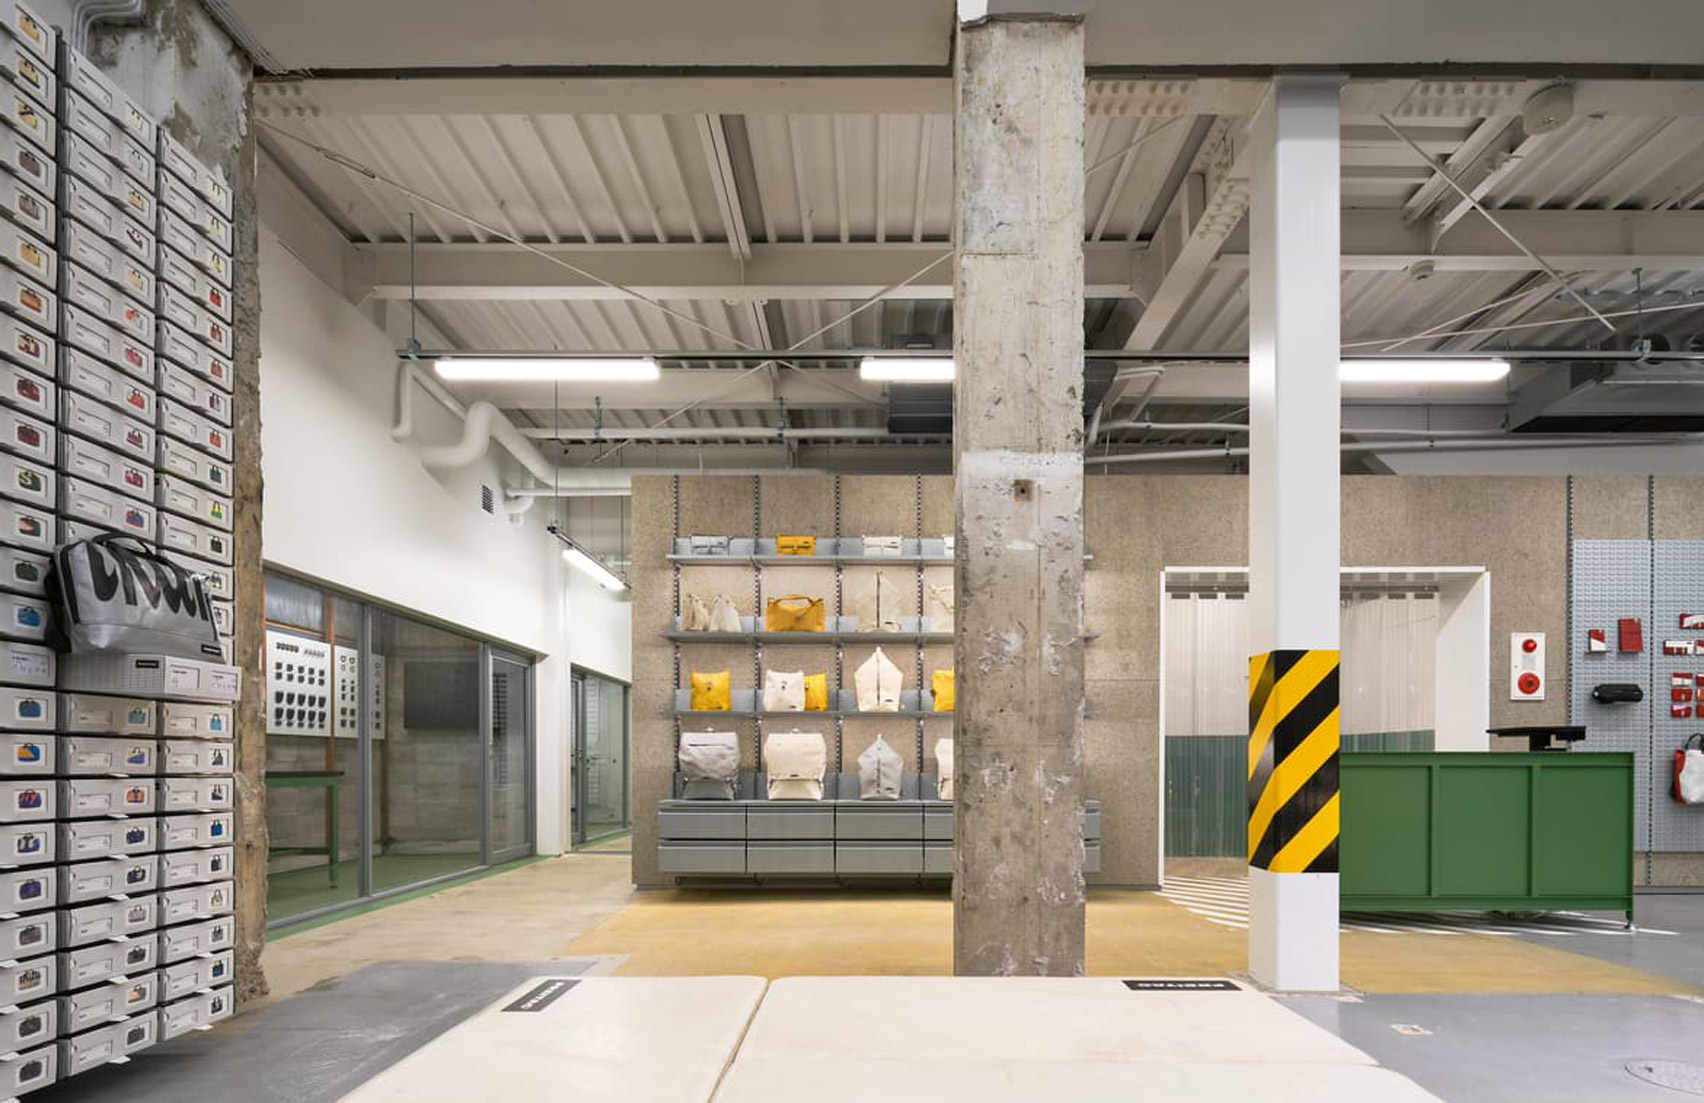 Freitag store in Kyoto has industrial interiors